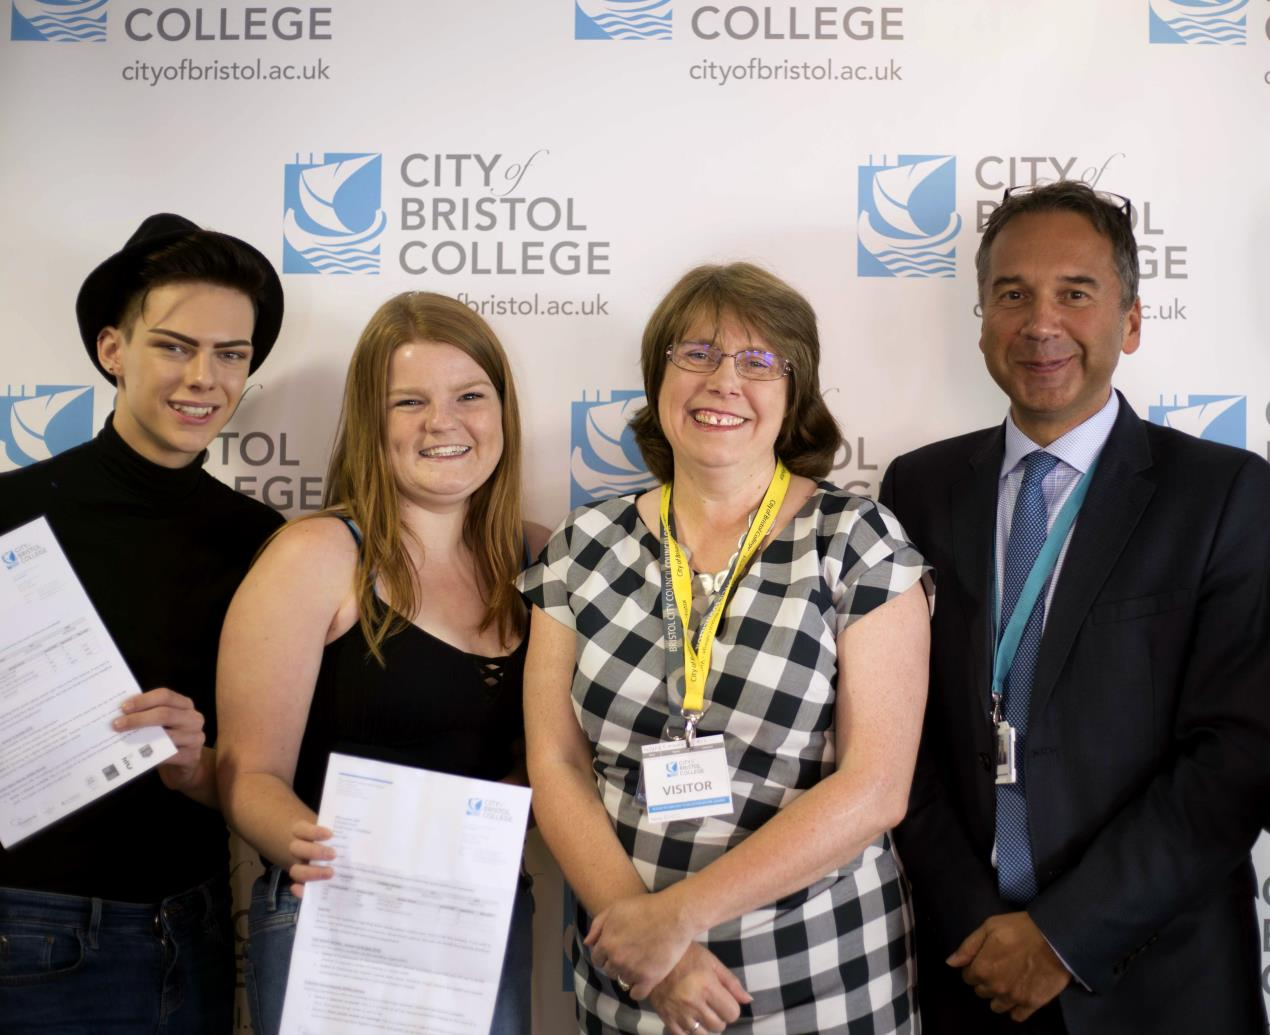 Students celebrate A-level results in Bristol